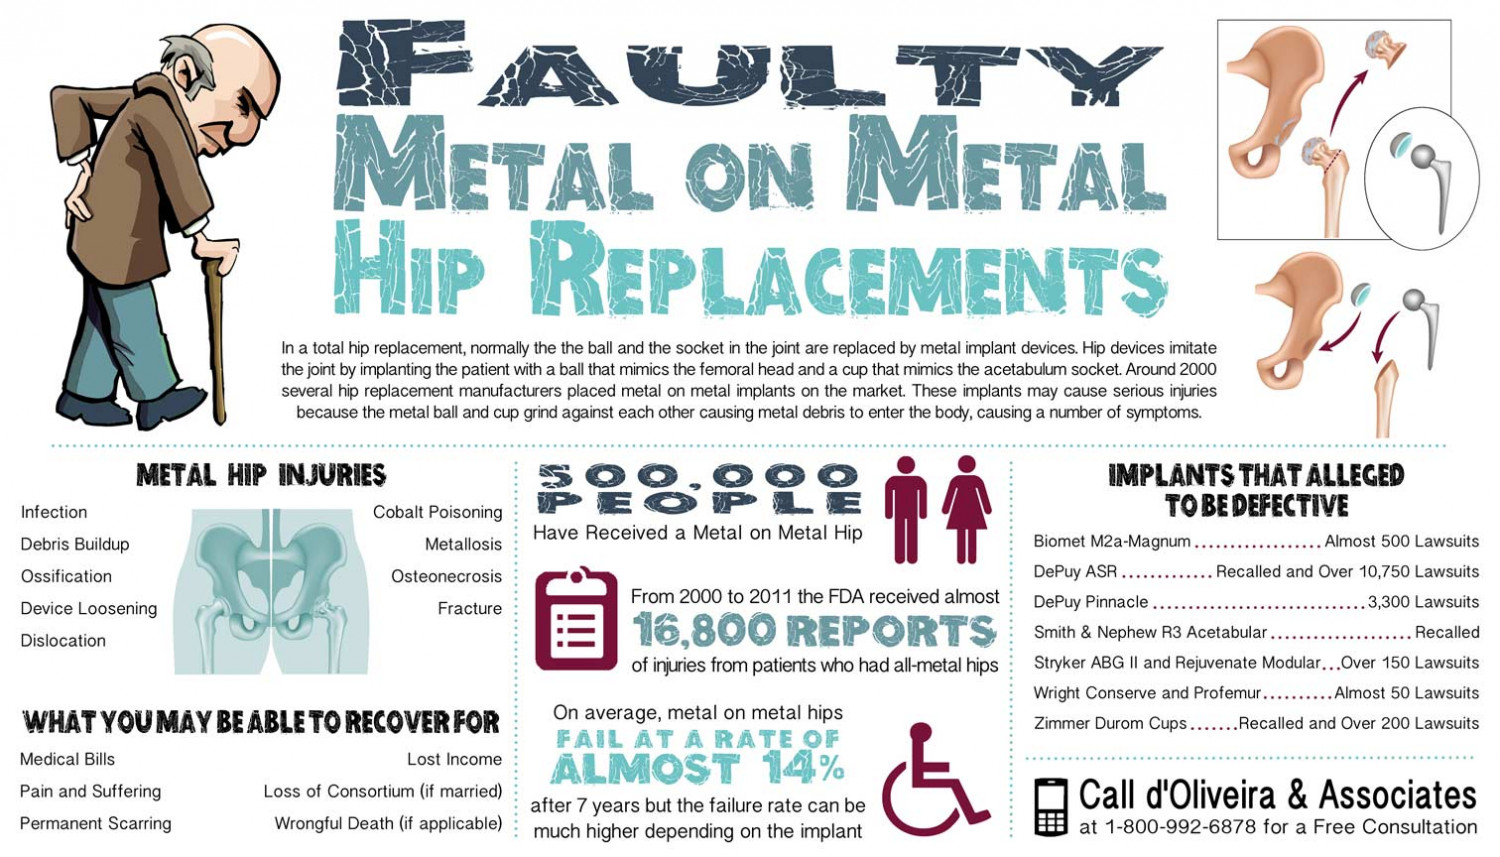 Faulty Metal on Metal Hip Replacements Infographic